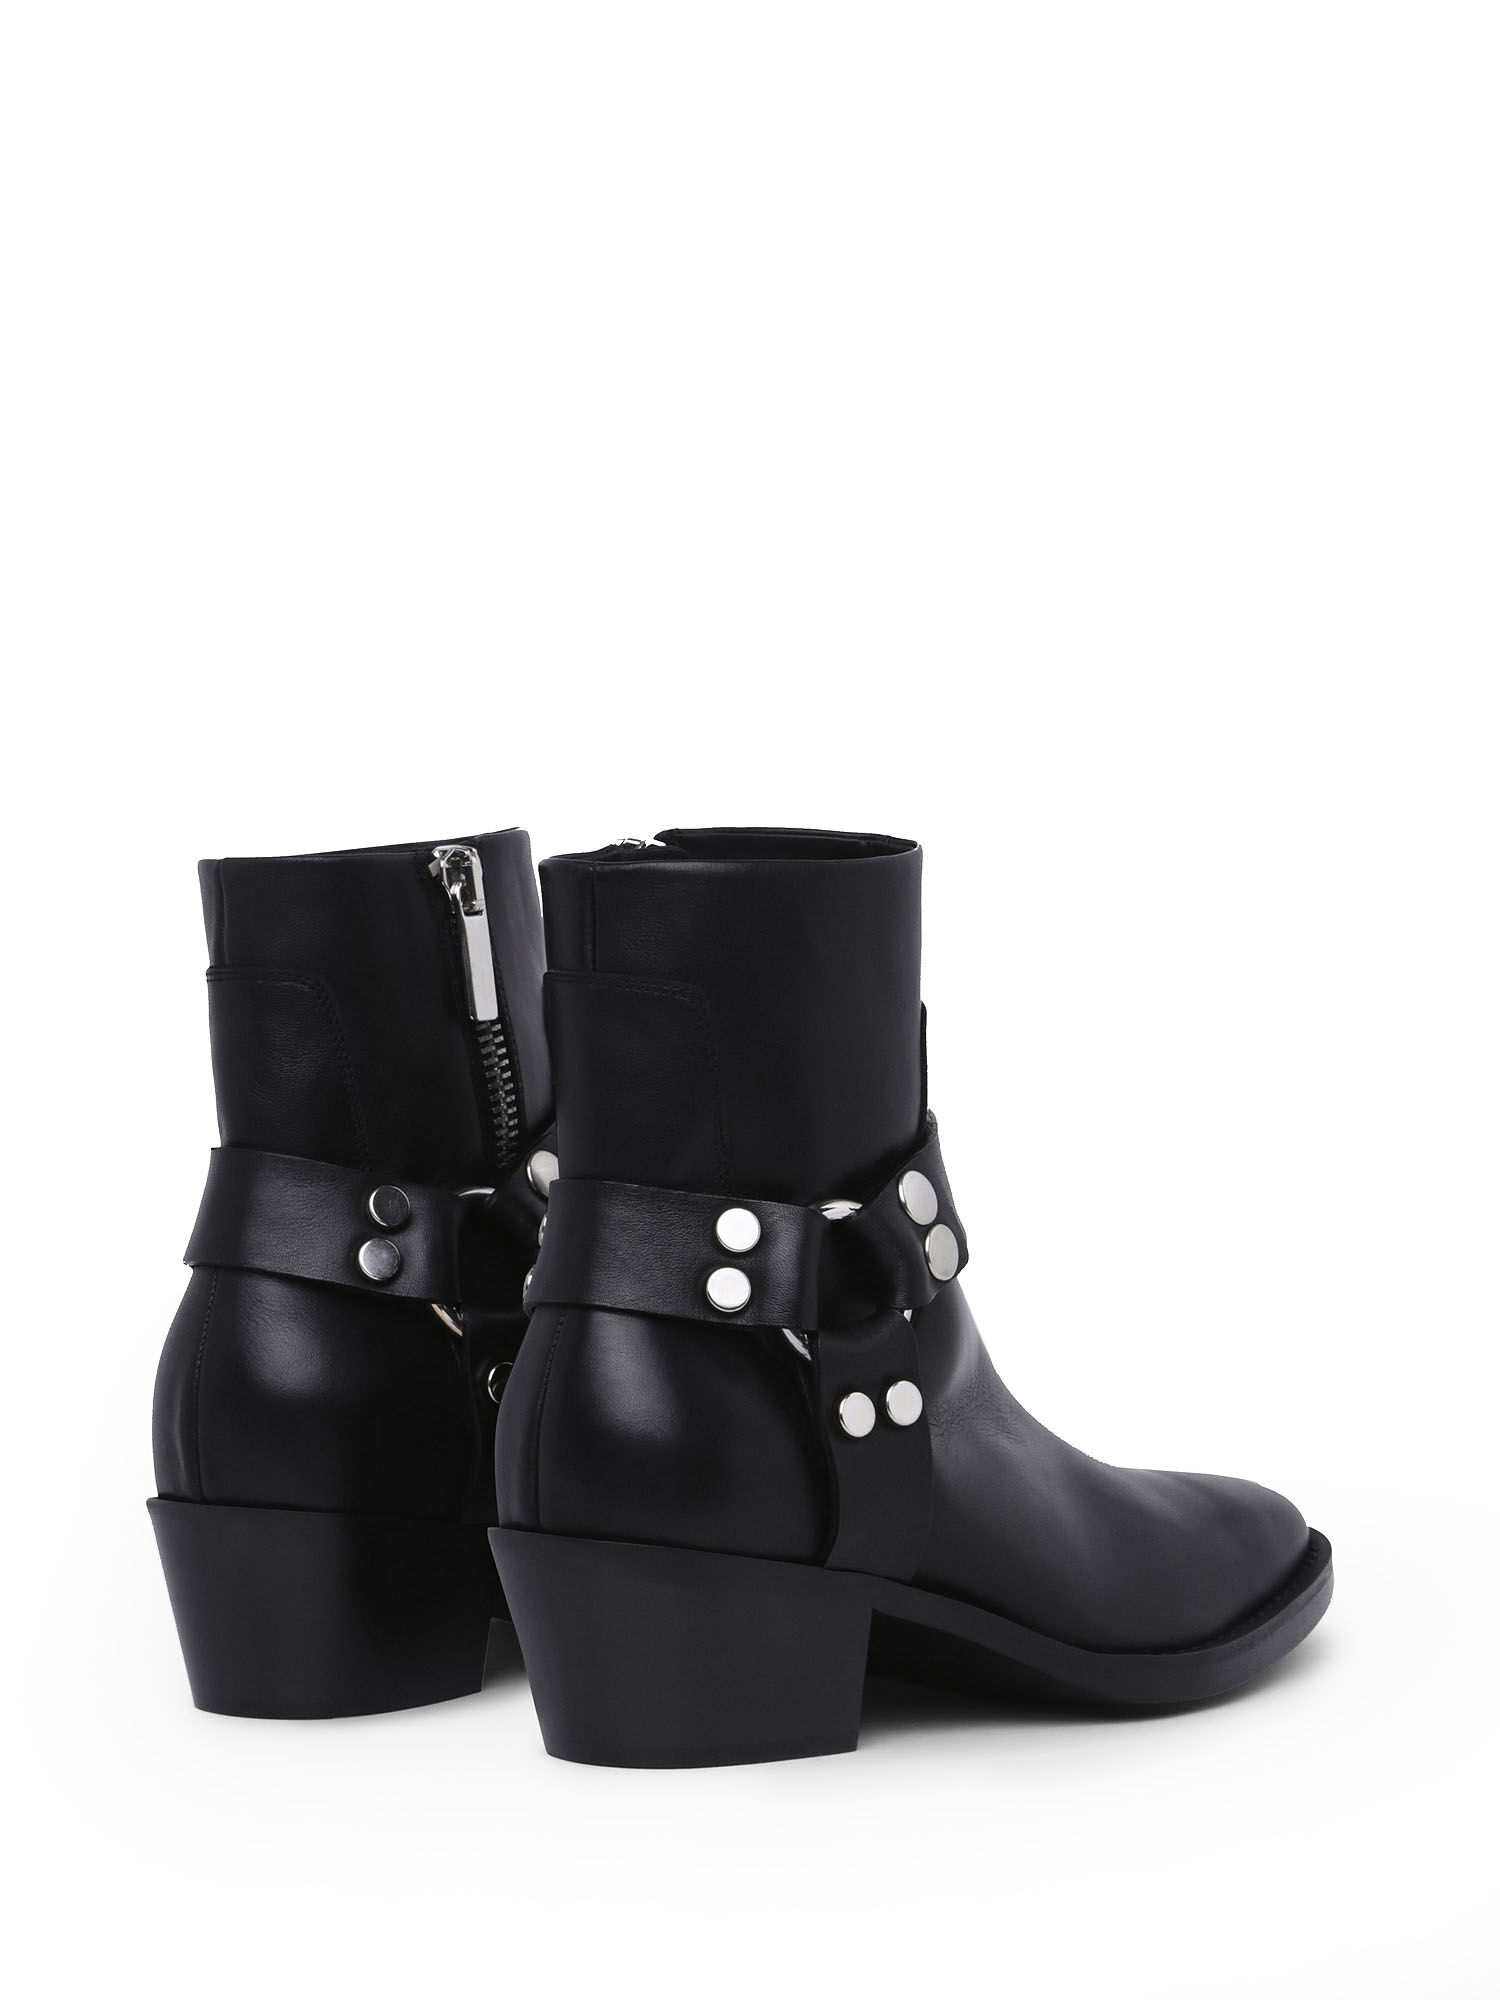 Western ankle boots in leather   Diesel